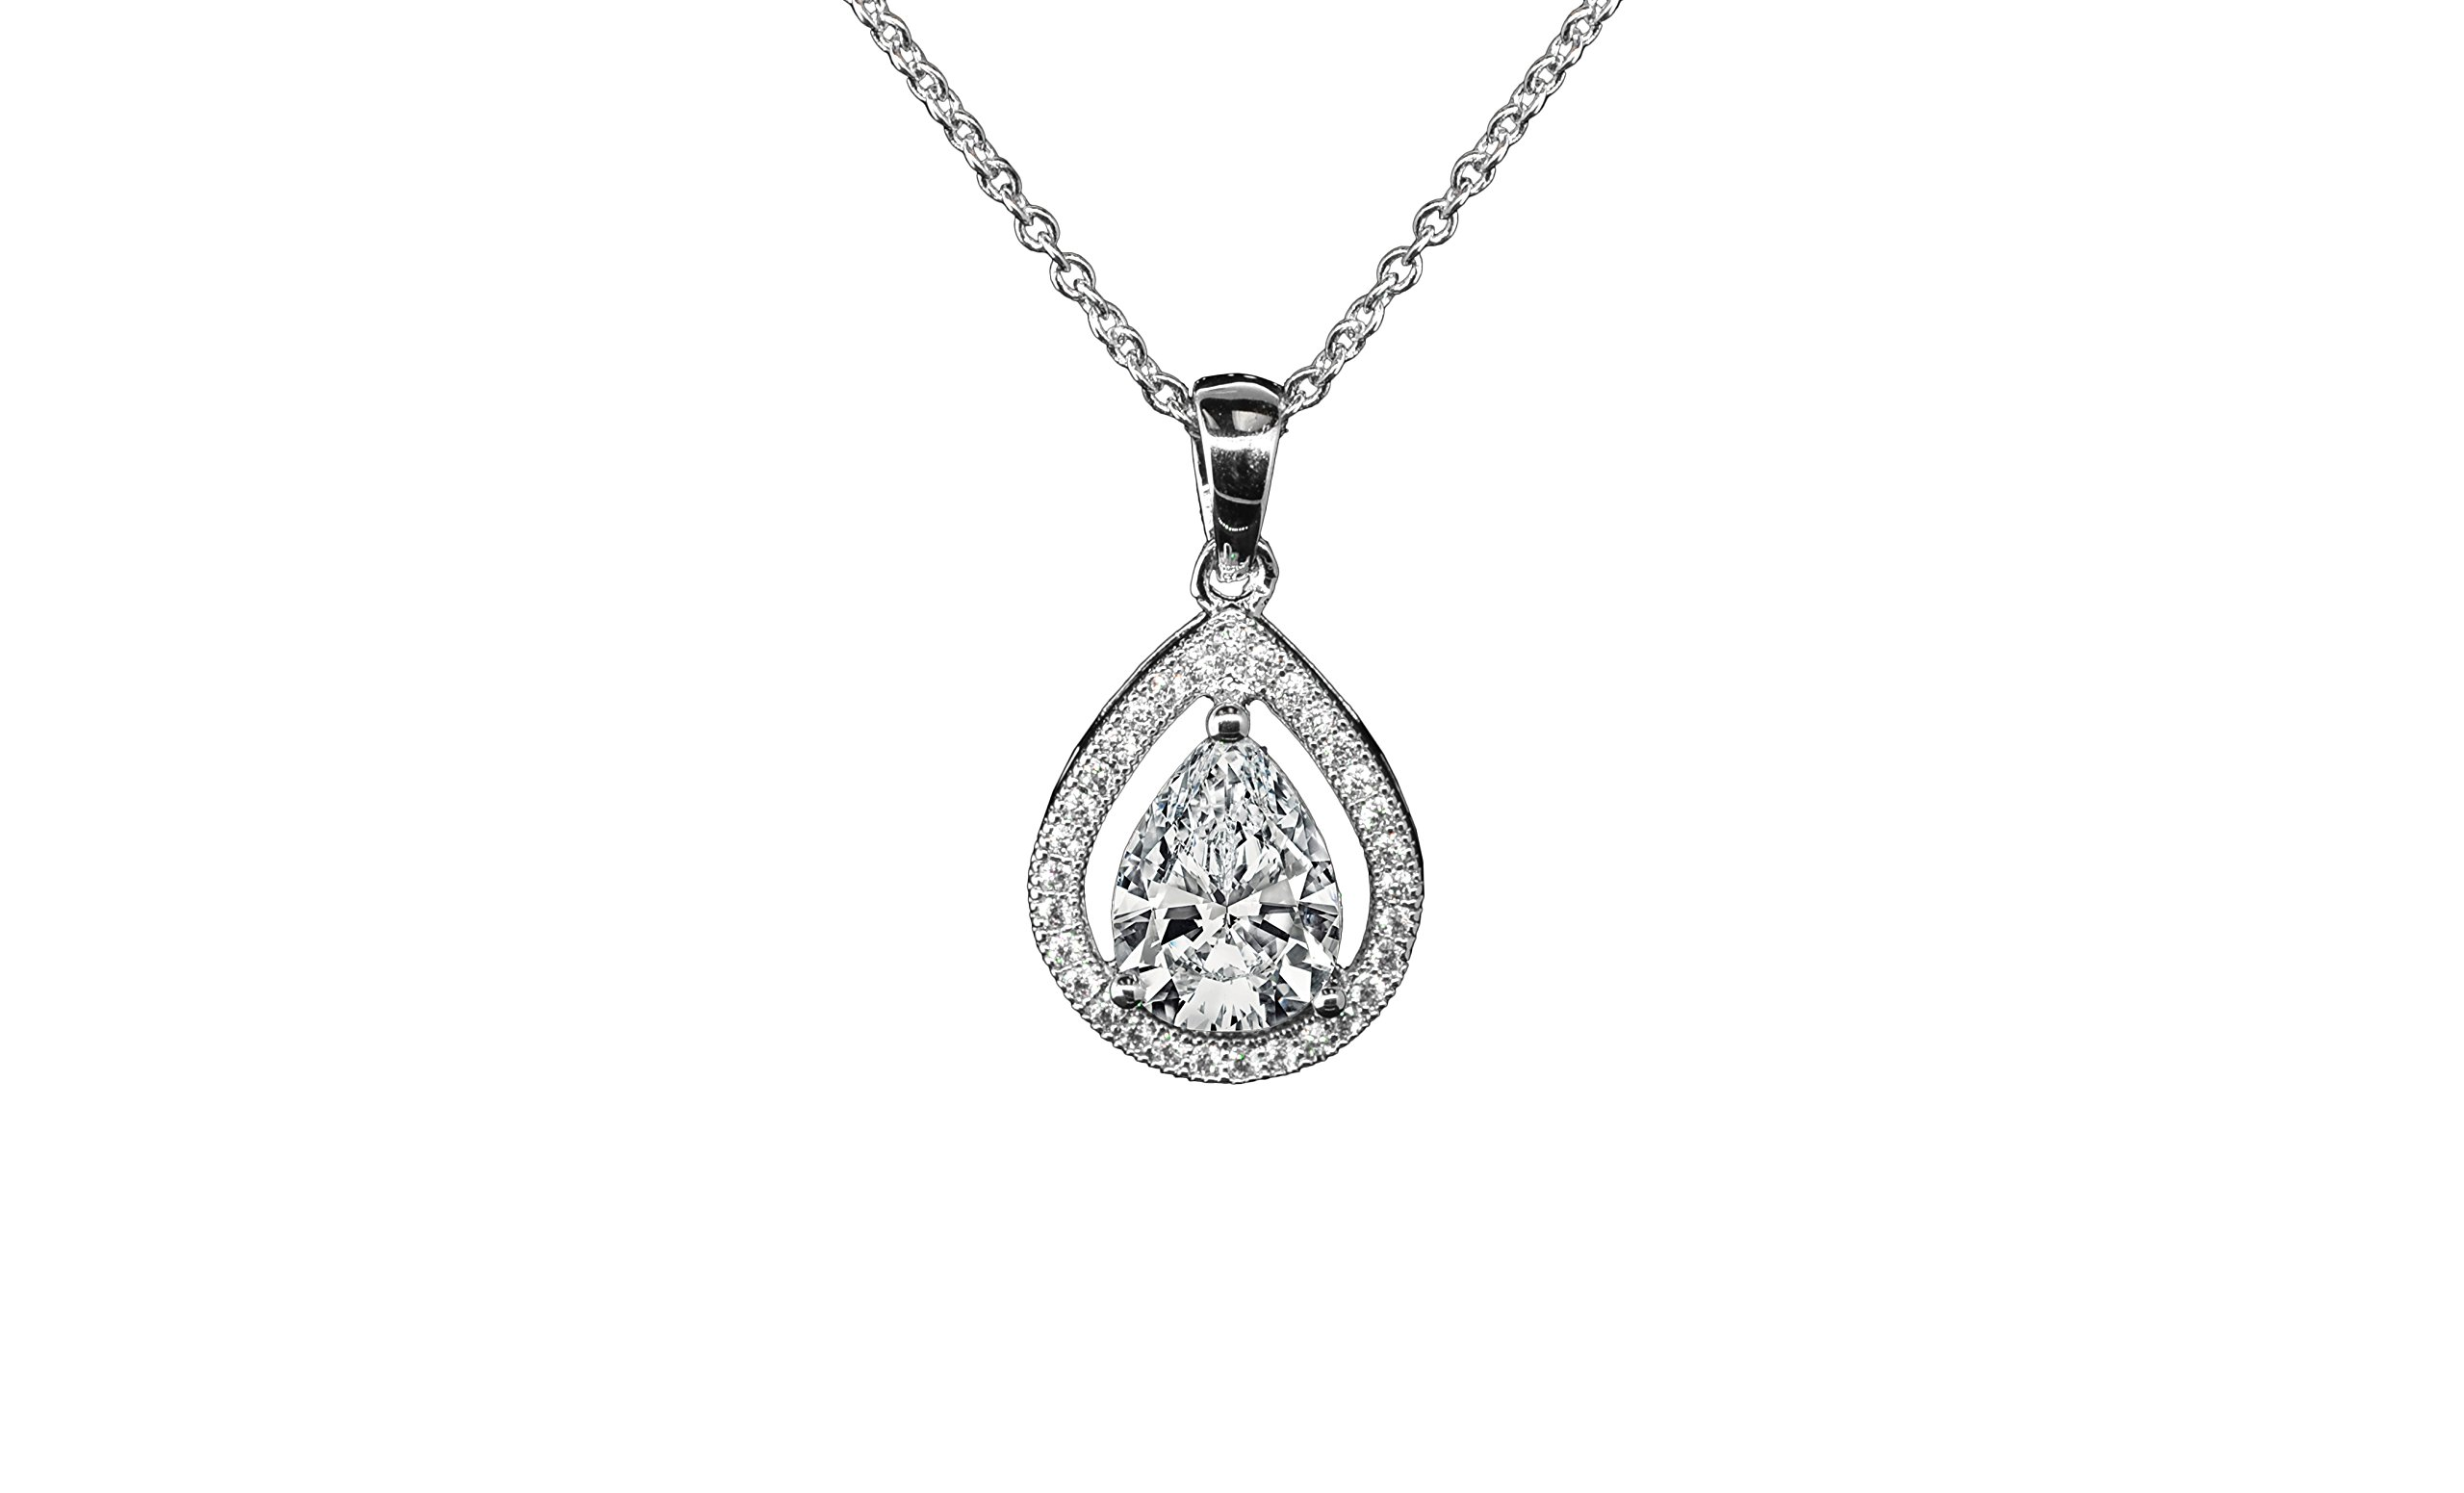 Cate & Chloe Isabel Queen 18k White Gold Halo Teardrop Pendant Necklace - Silver Halo Necklace w/Solitaire Round Cut Cubic Zirconia Diamond Cluster - Wedding Anniversary Jewelry - MSRP - $150